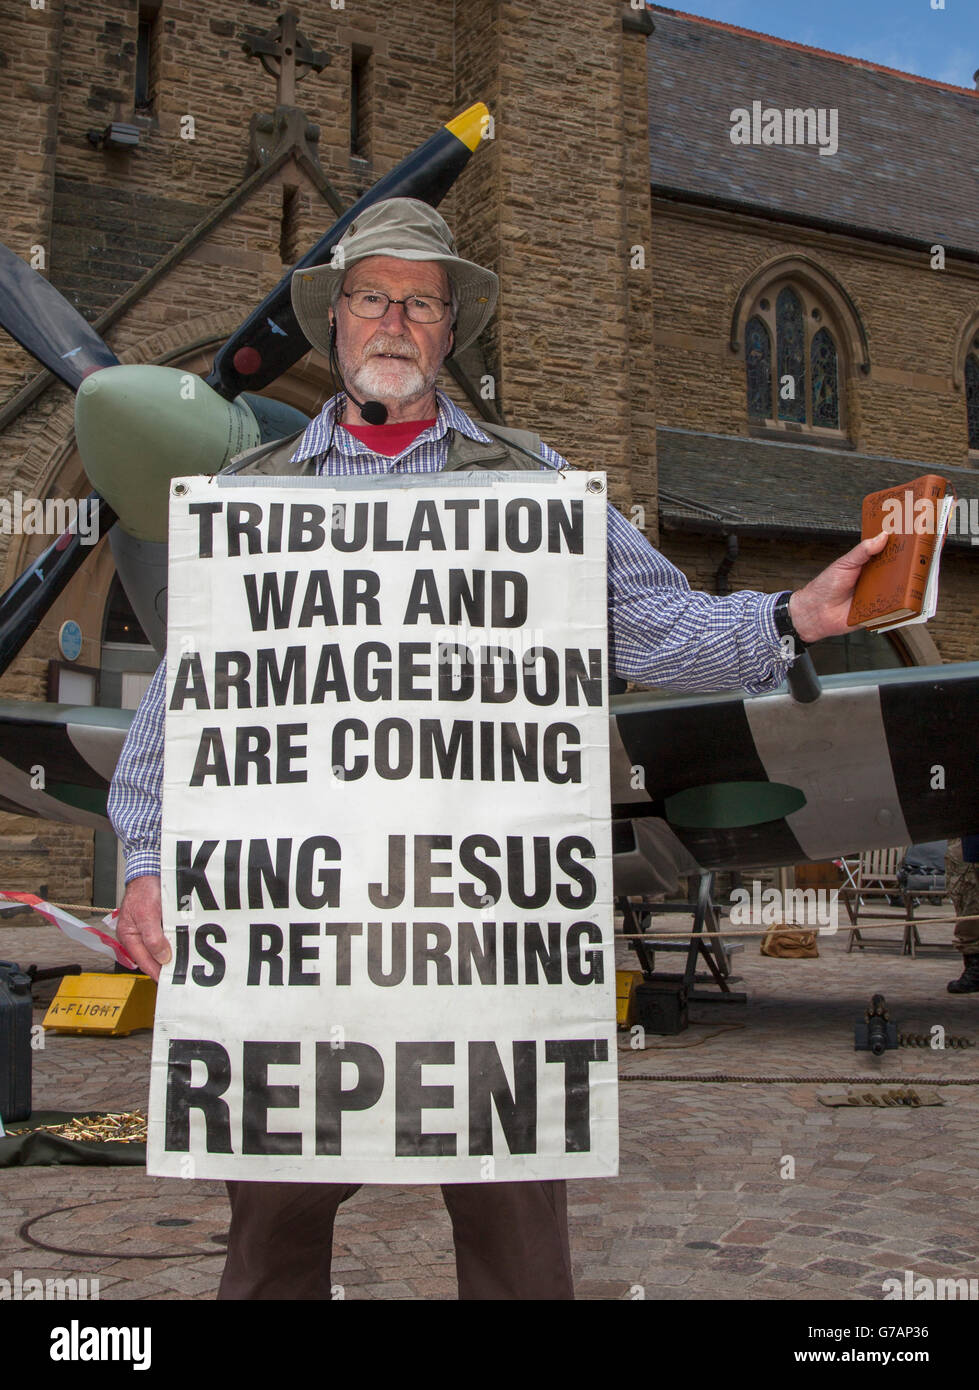 Kenneth from the Scottish Highlands, warns of Armageddon and the return of King Jesus, in Blackpool, Lancashire, - Stock Image